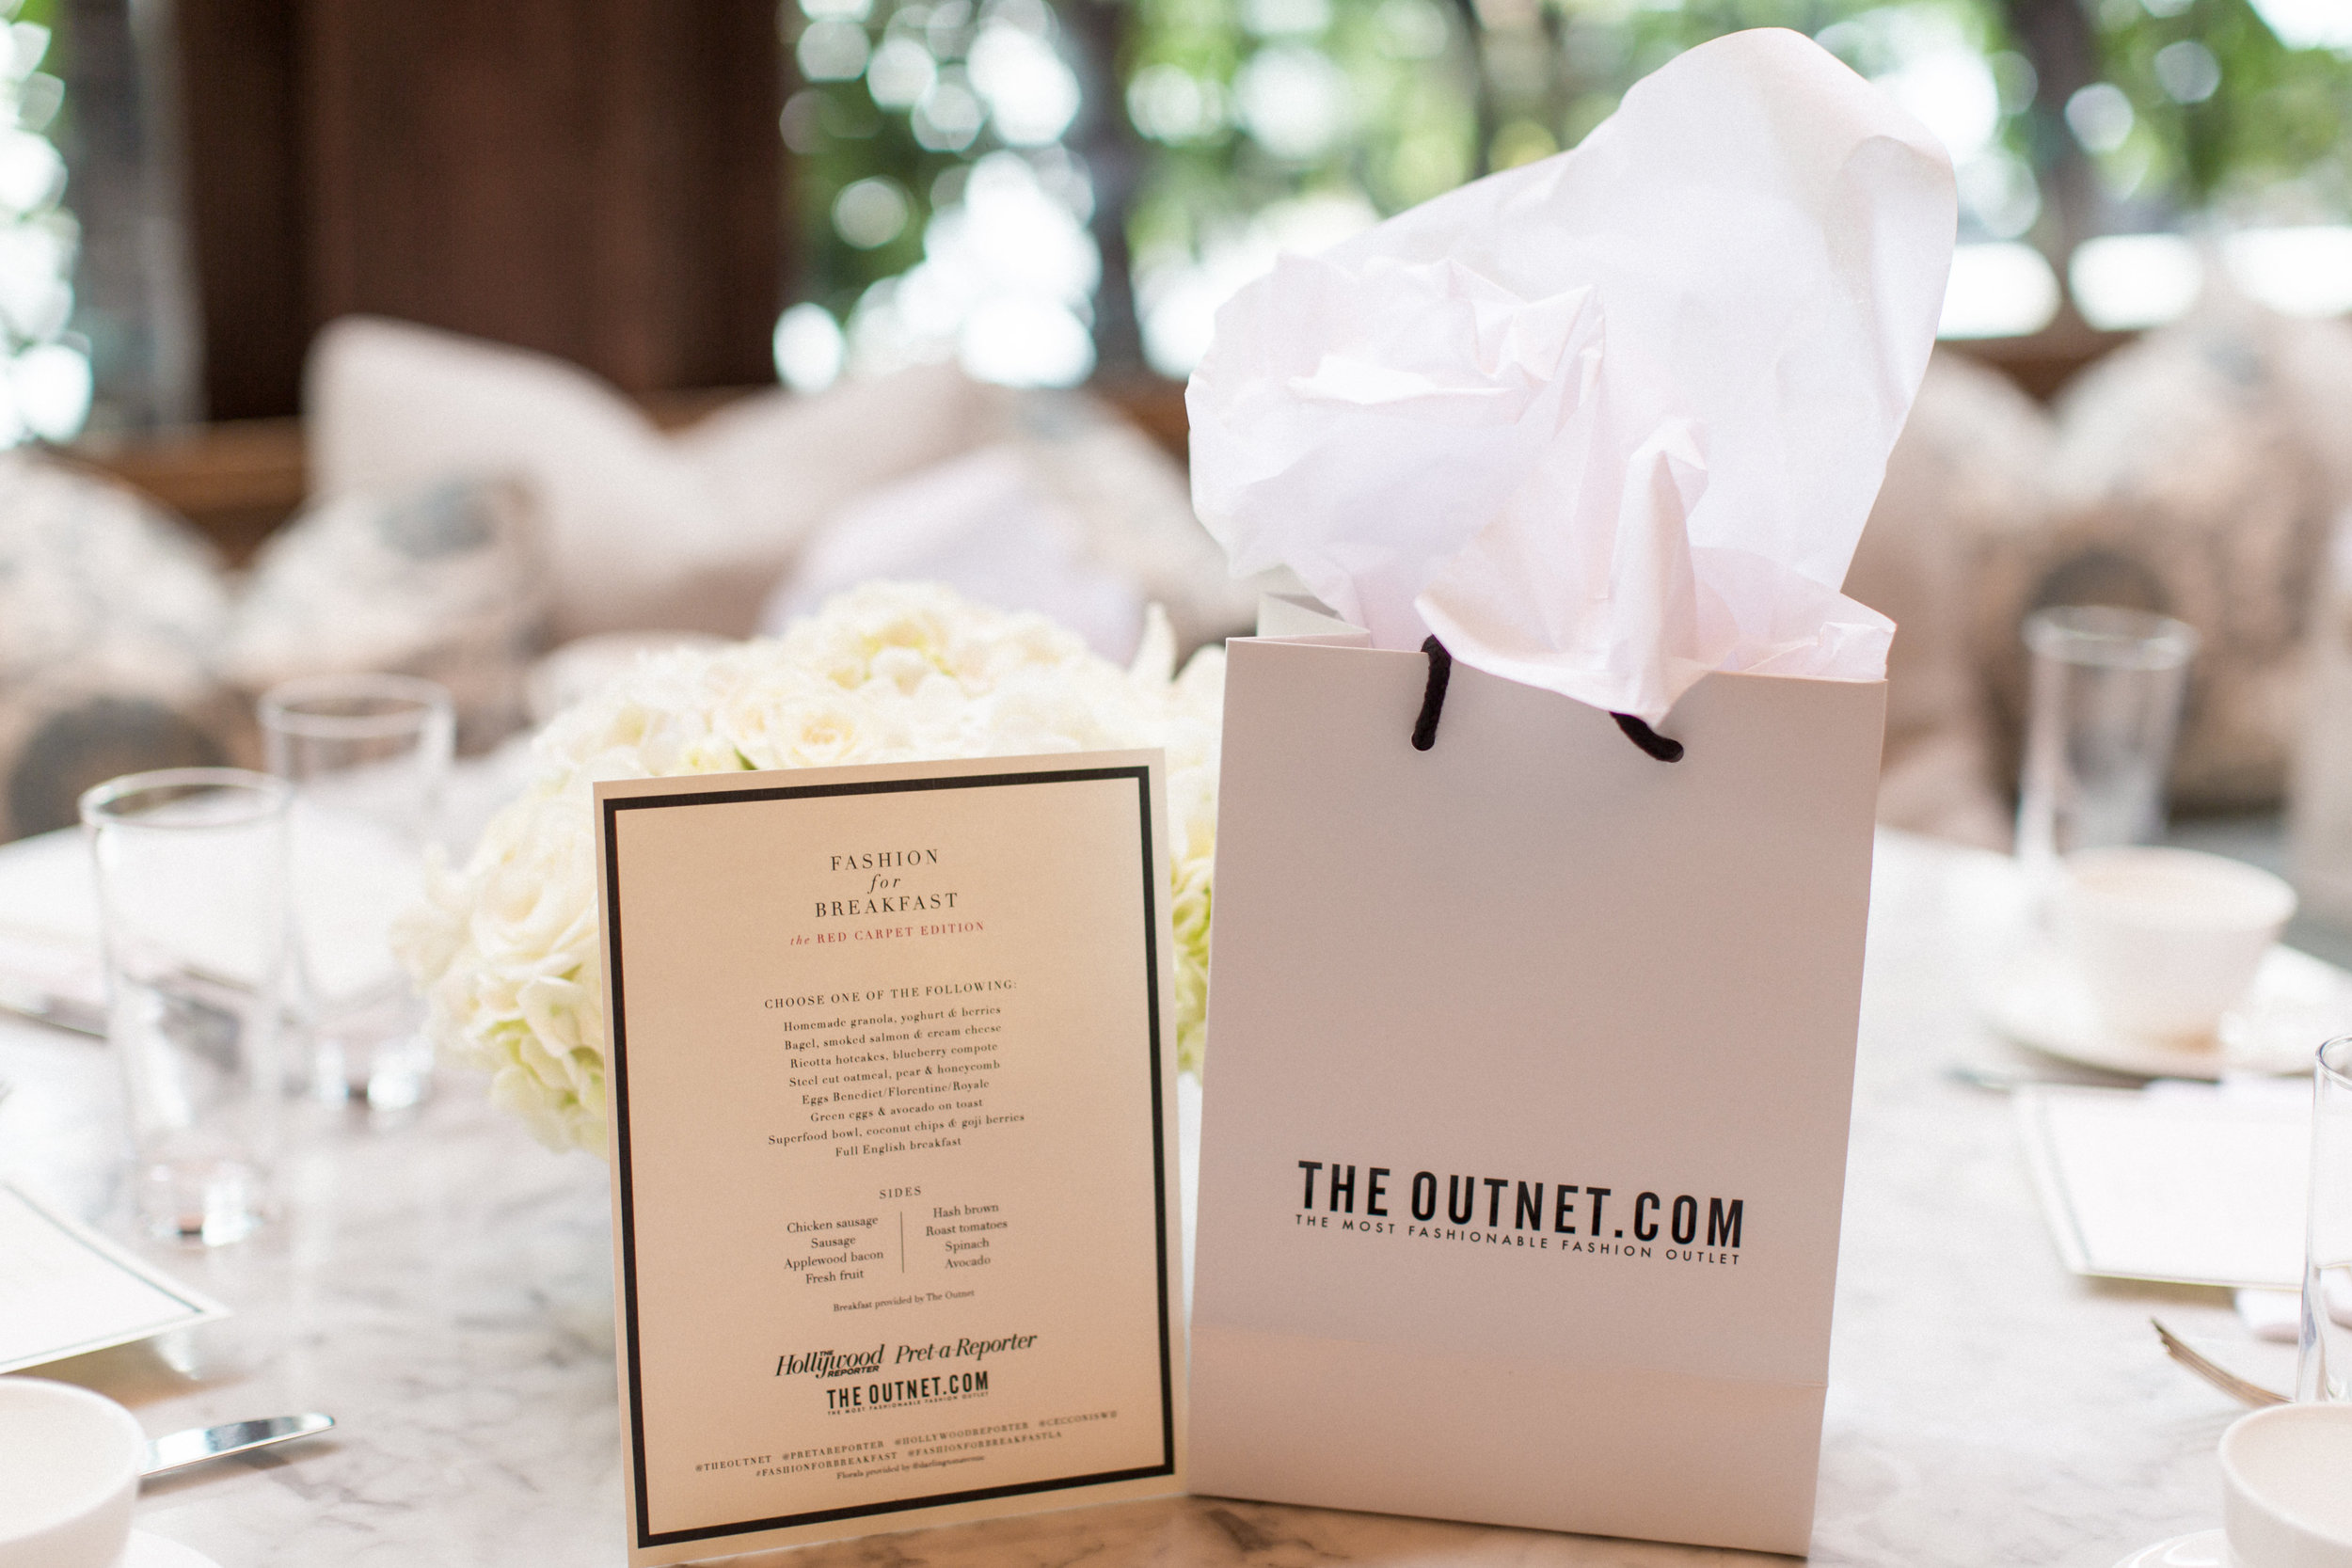 Fashion for Breakfast with The Outnet and THR